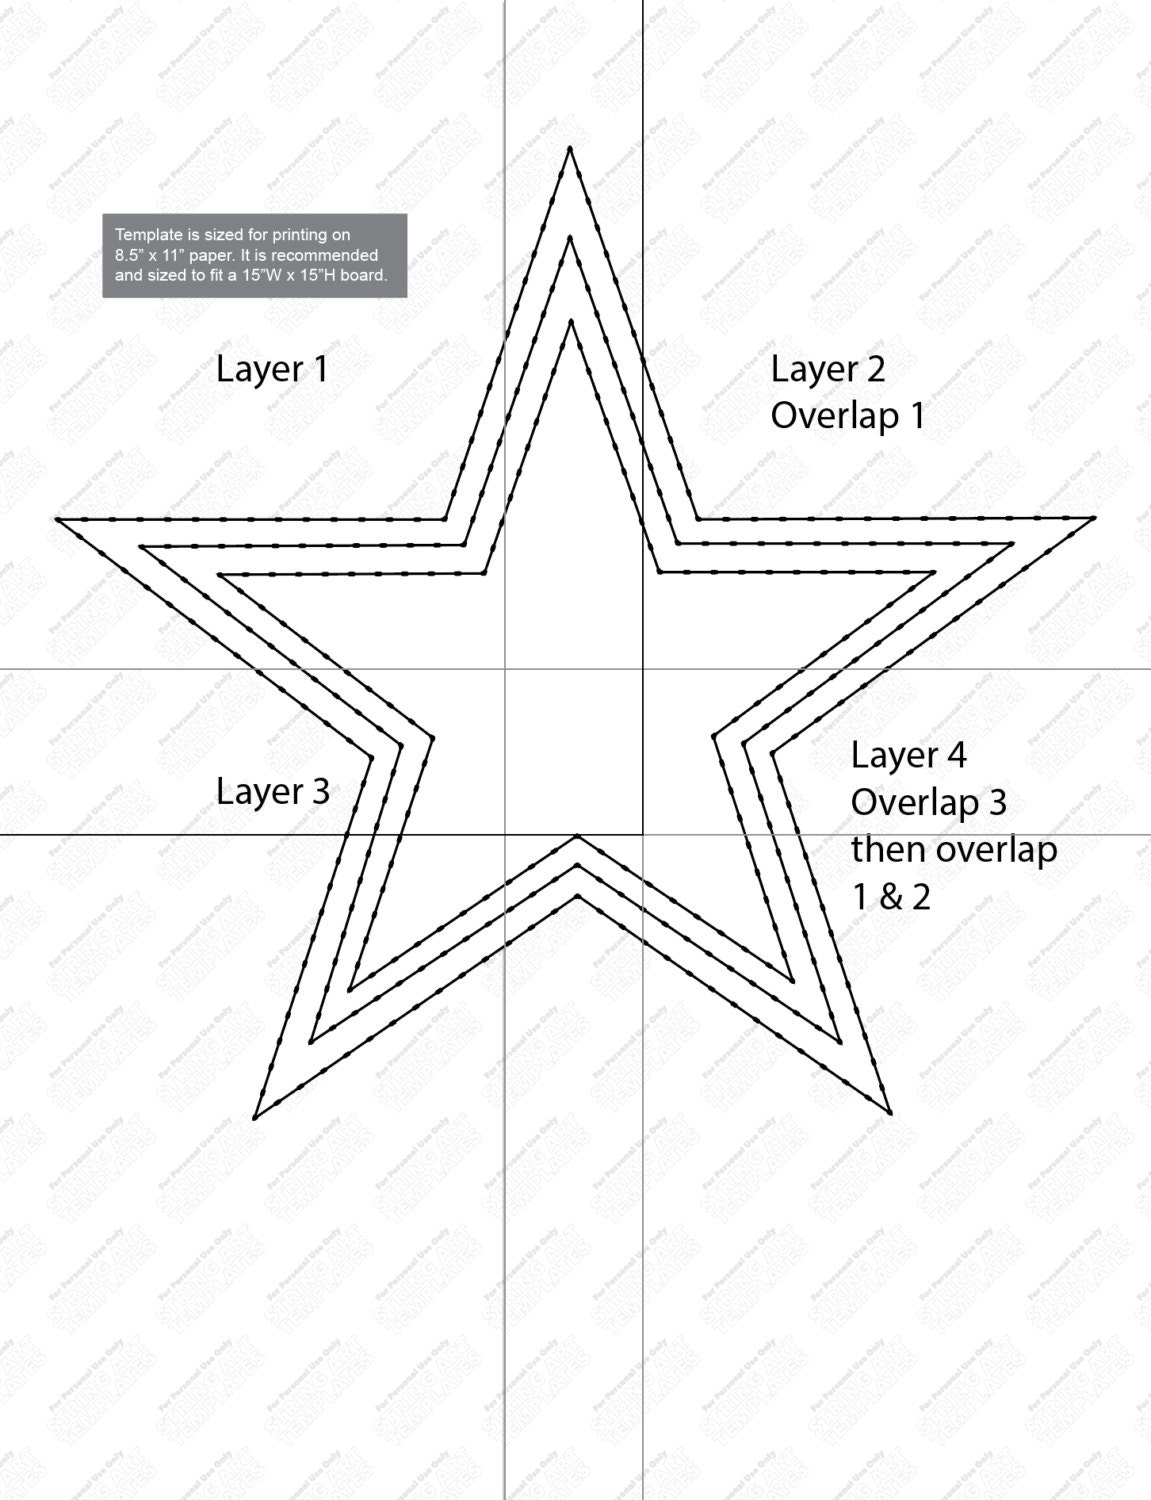 Delighted 15 Year Old Resume Template Tiny 16 Oz Tumbler Template Solid 1st Job Resume Examples 2 Inch Hexagon Template Youthful 2 Page Resume Format Doc Brown2 Page Resume Sample Format Dallas Cowboys   String Art Template From StringArtTemplate On ..